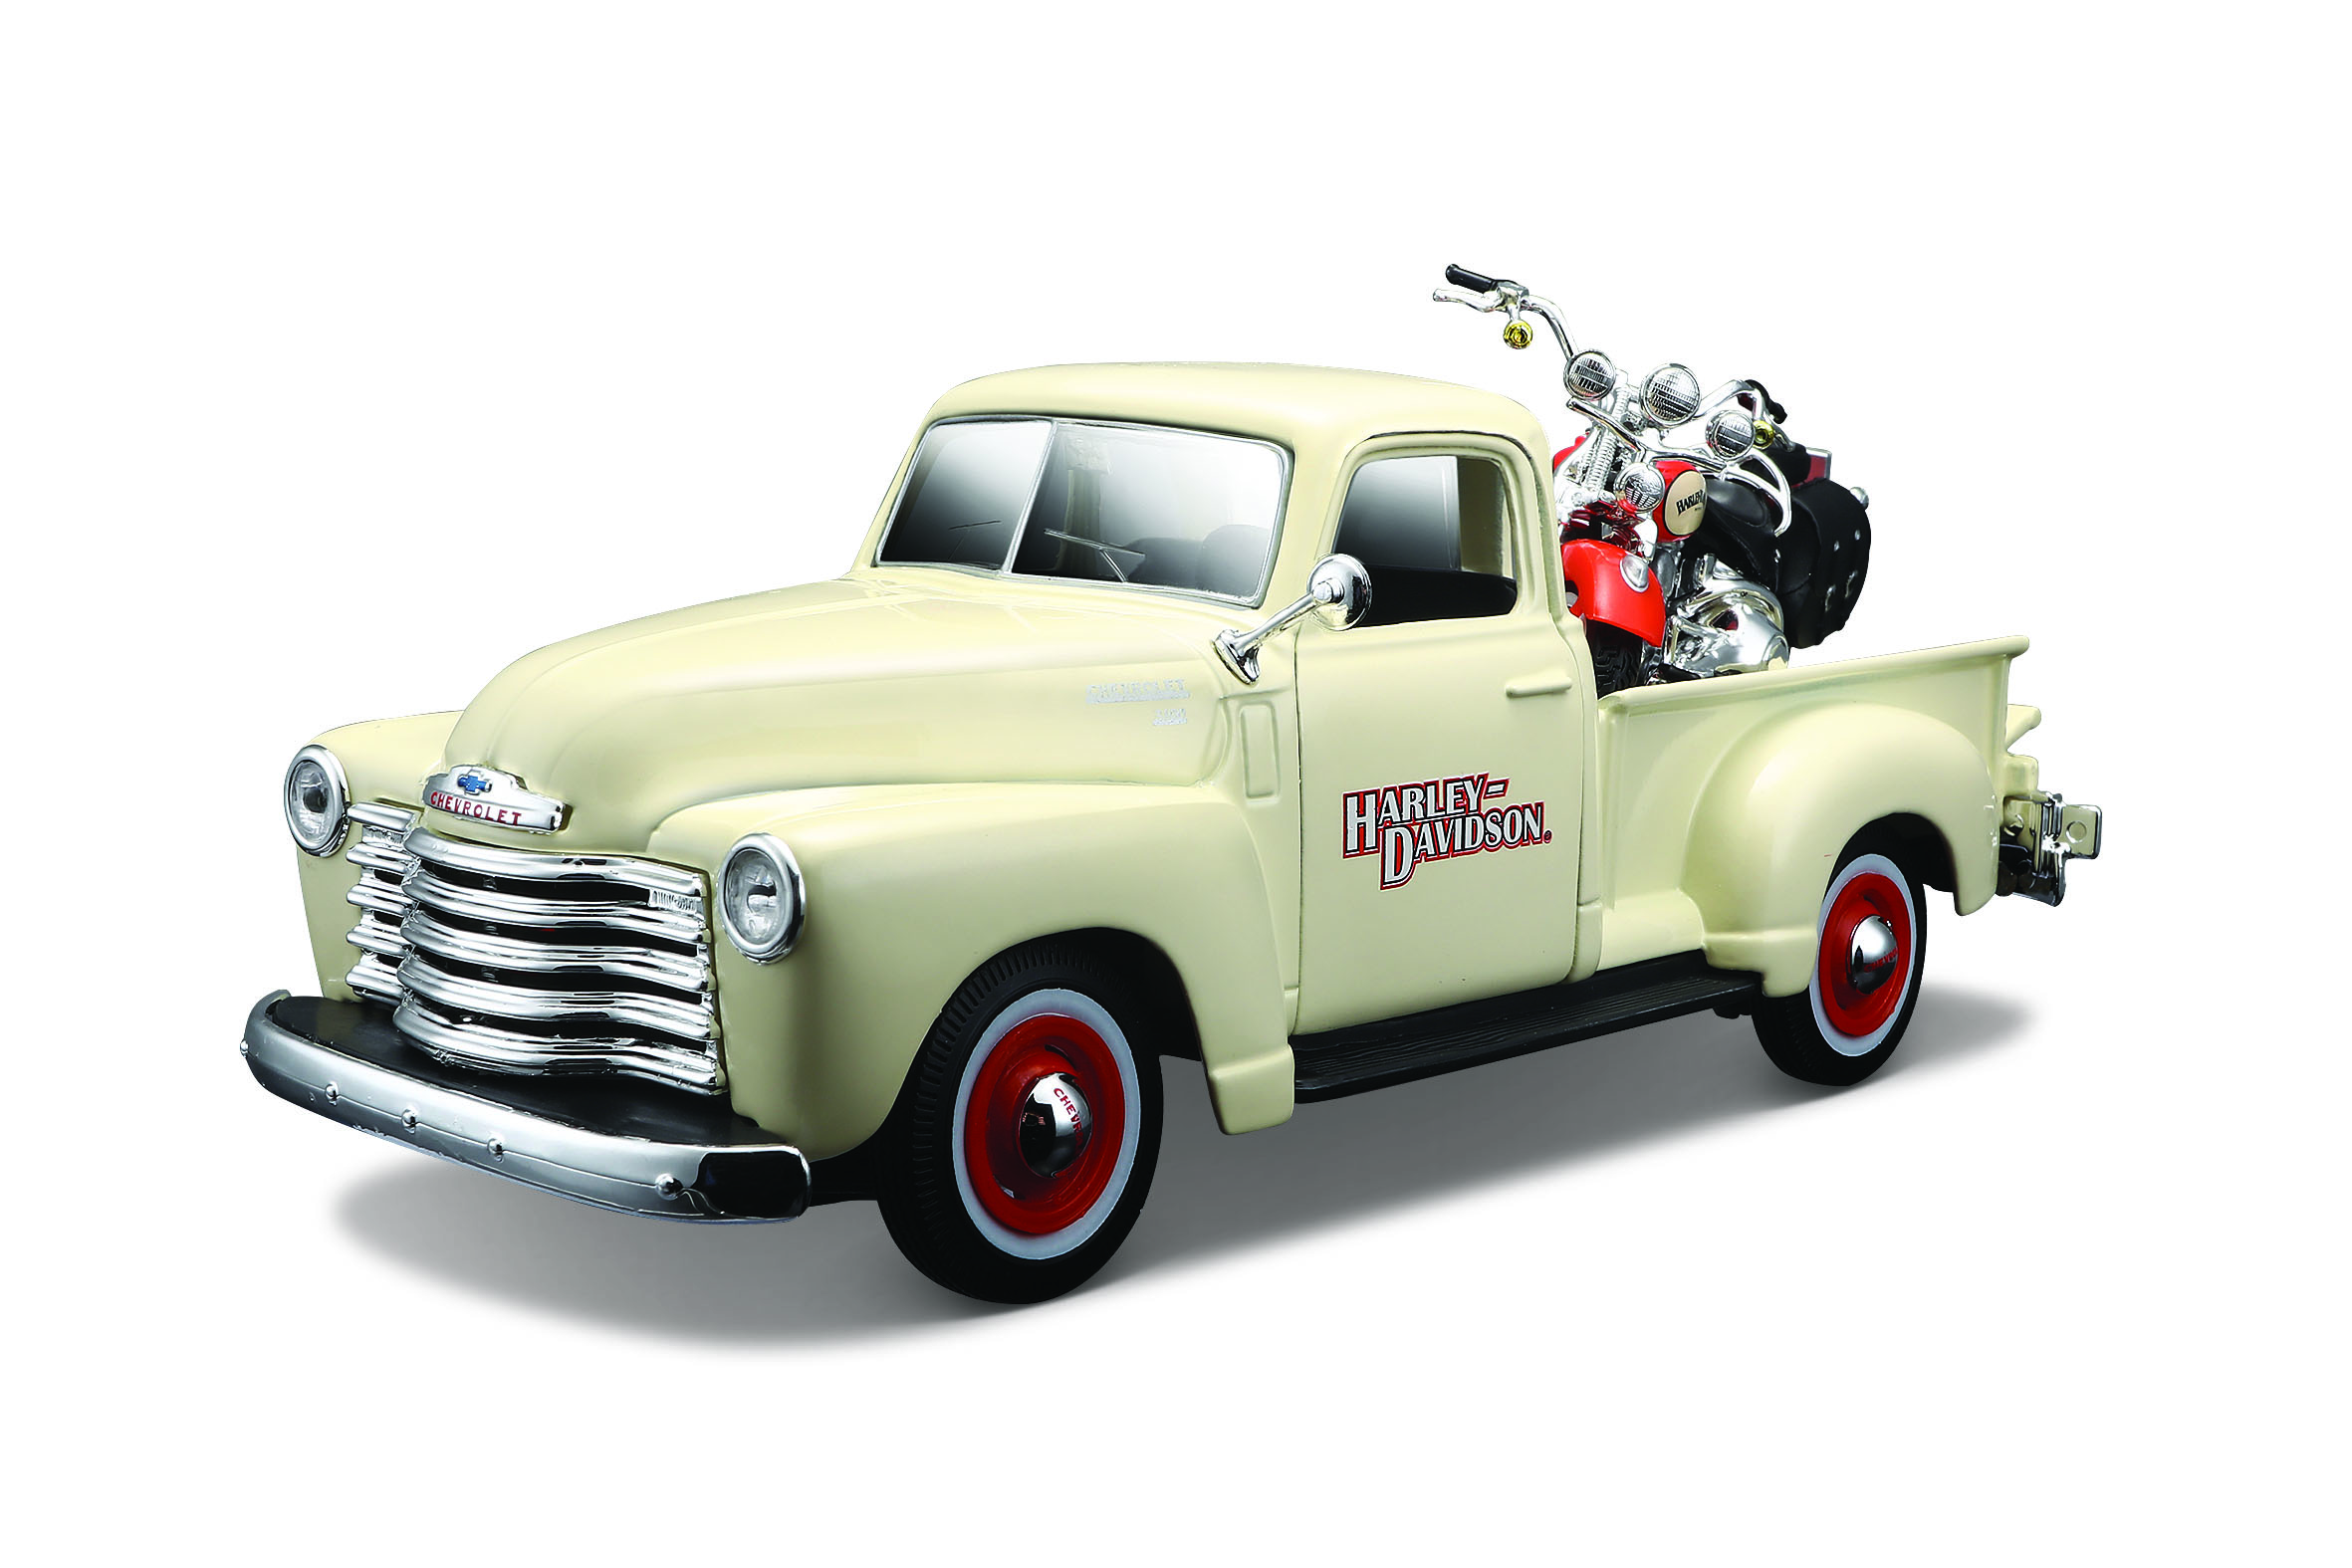 2001 FLSTS Heritage Springer + 1950 Chevrolet 3100 Pickup